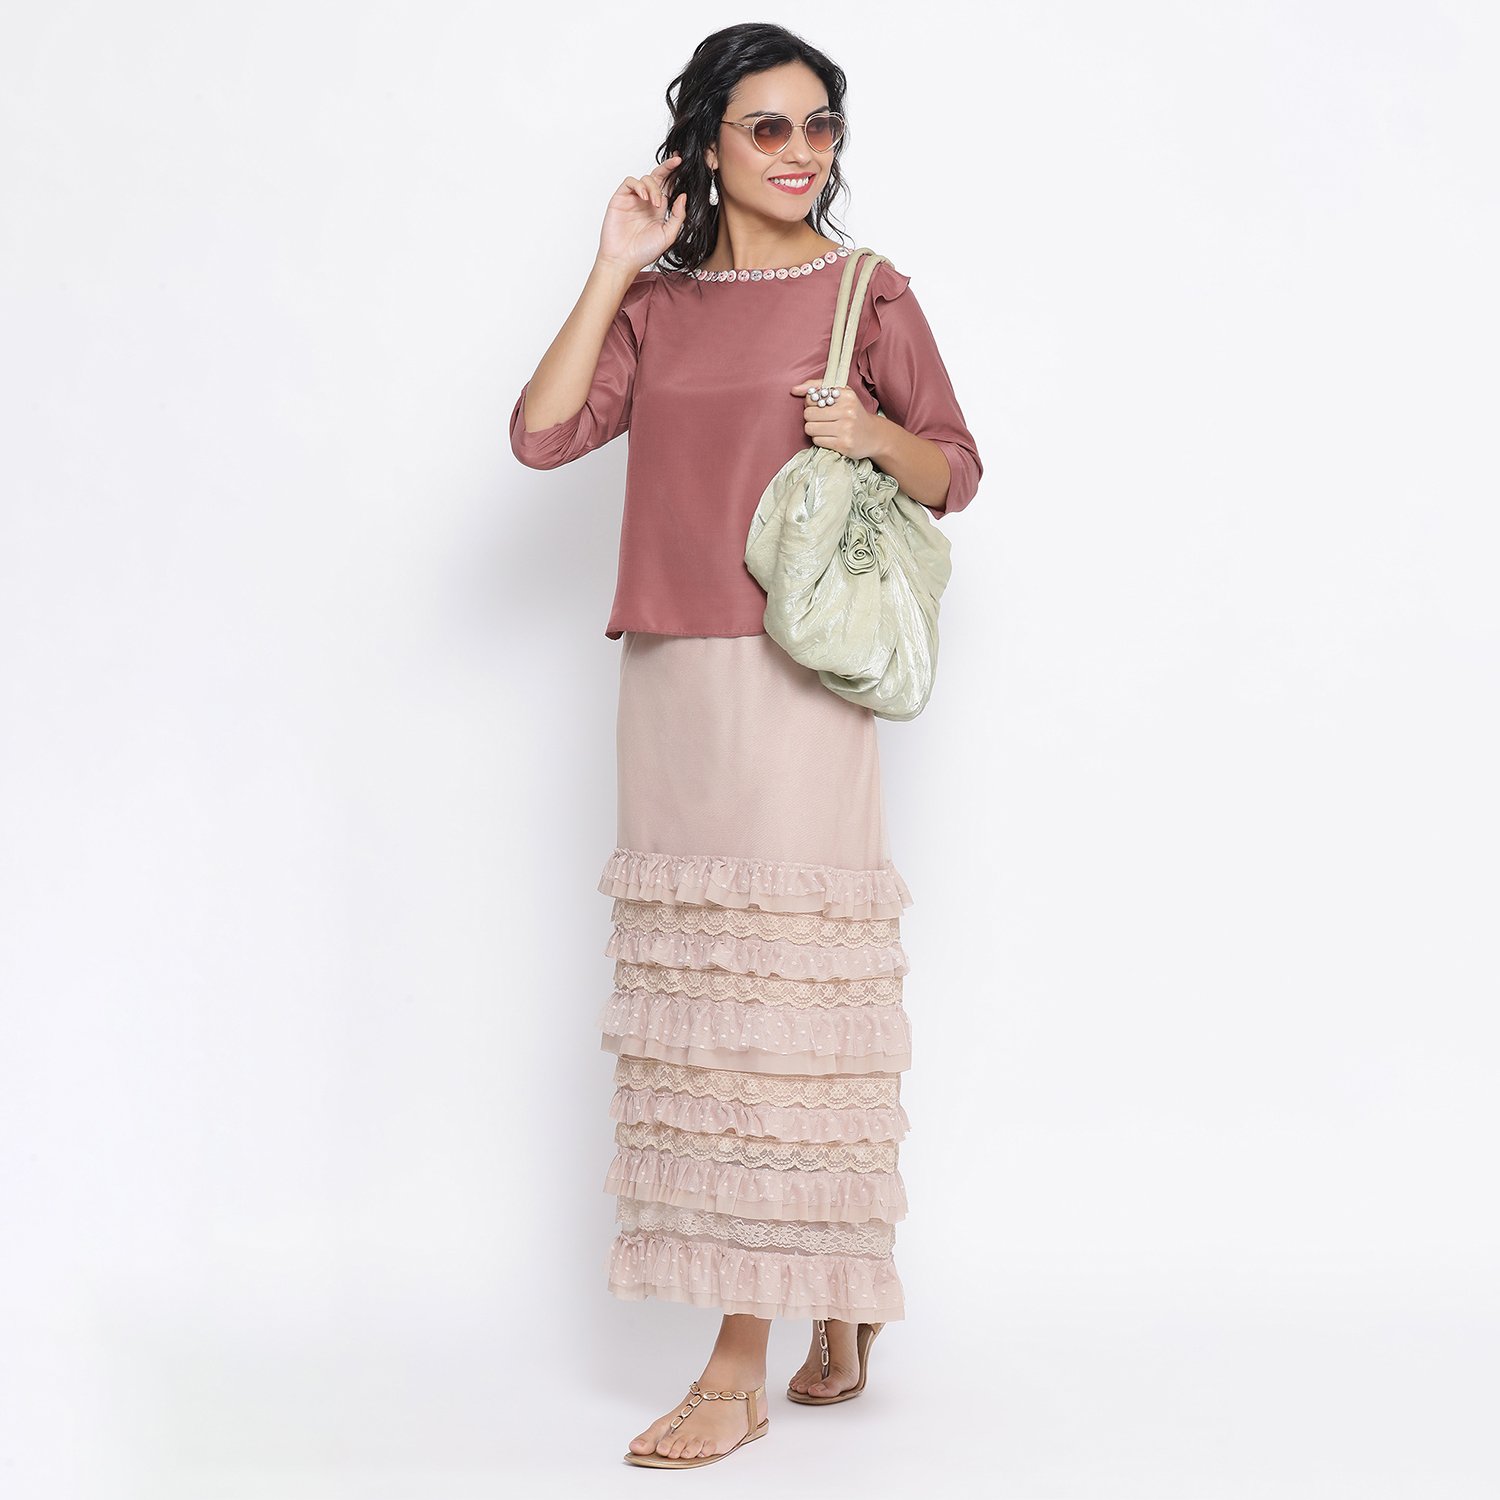 Buy Rose Wood Top With Button At Neck For Women